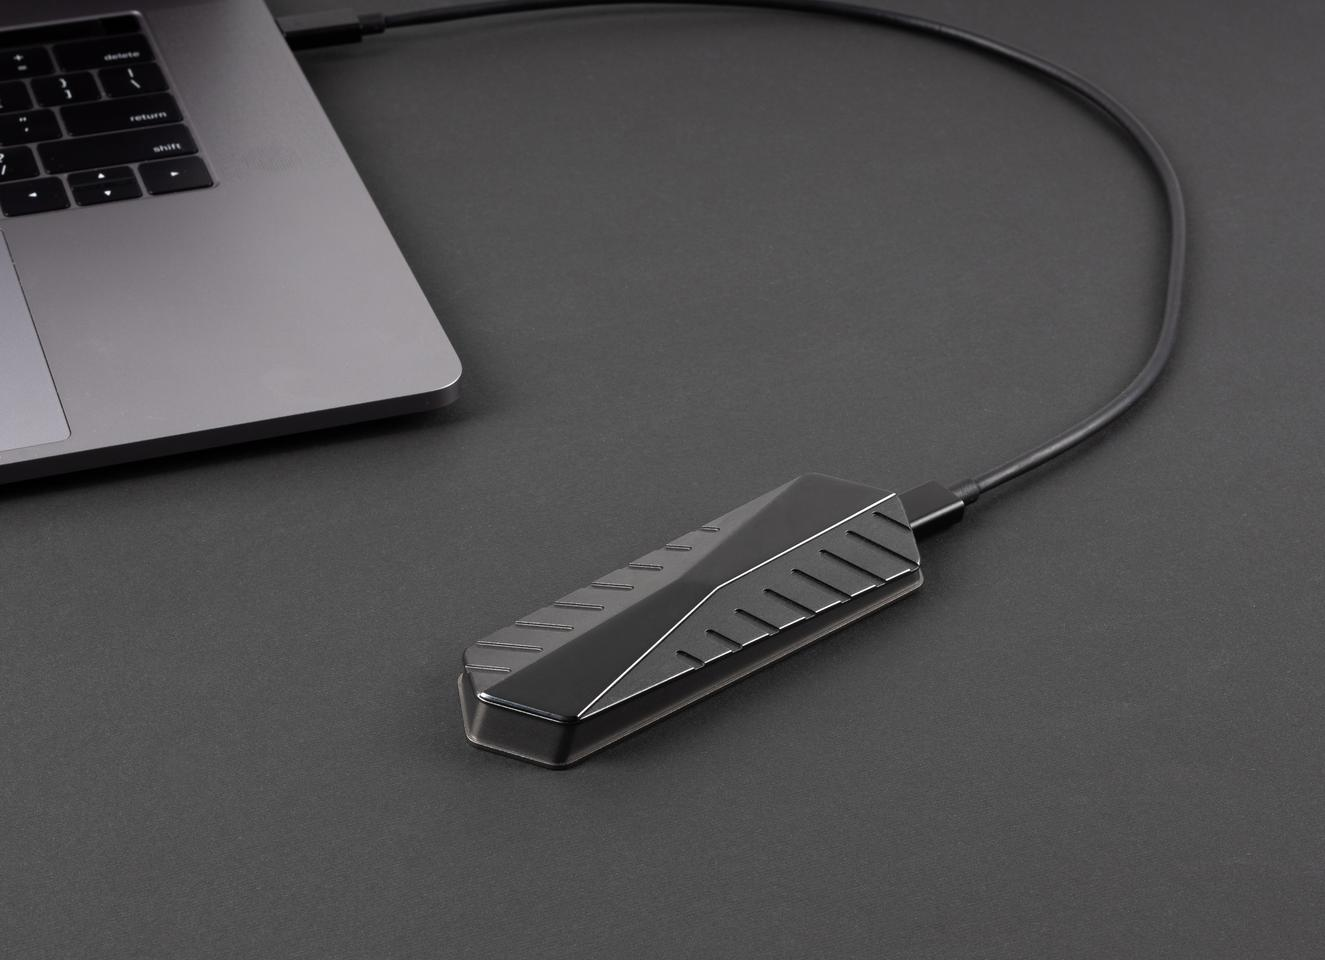 GigaDrive is an SSD with read and write speeds of up to 2,800 MB/s